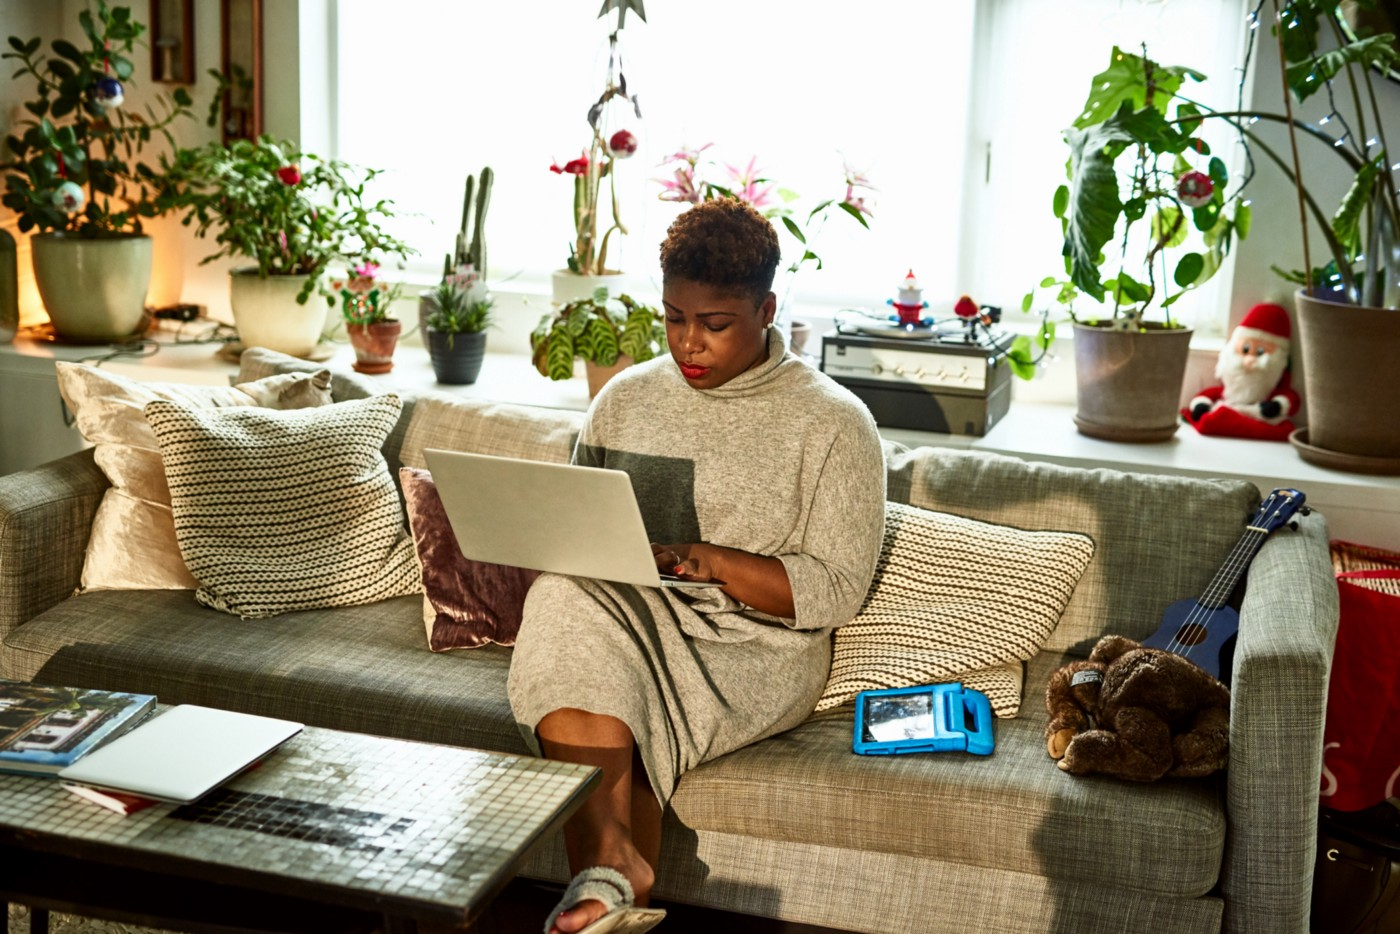 Black woman hard at work on her computer, sitting on her couch.